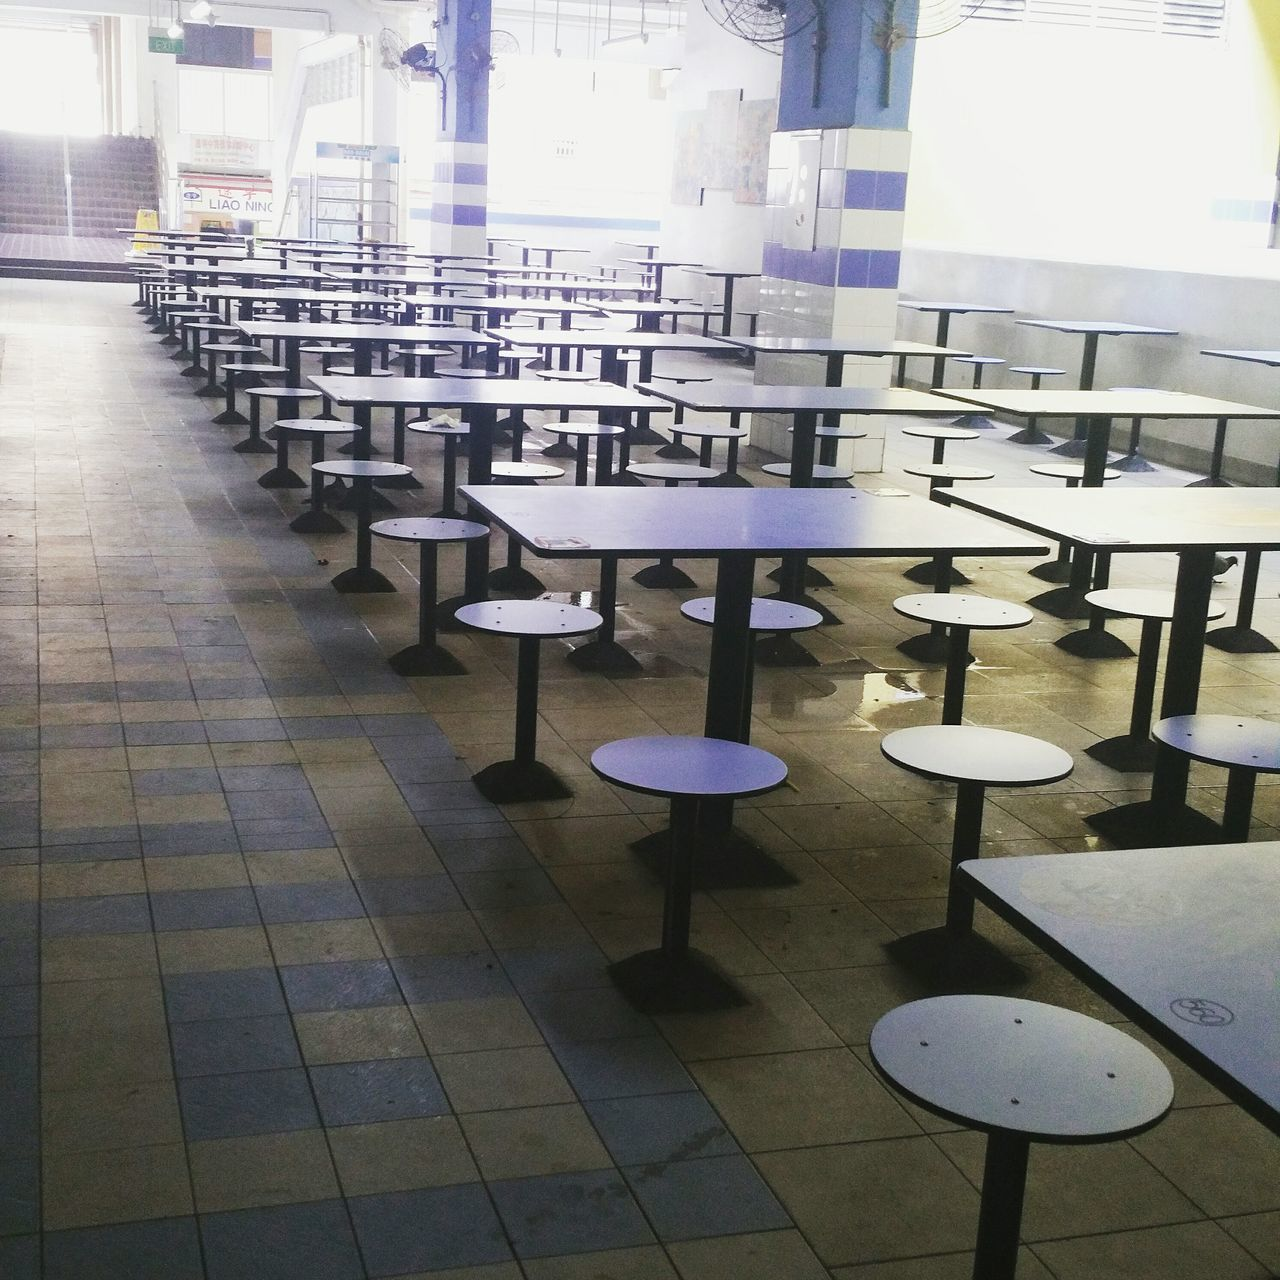 Nostalgia Chair No People Indoors  Day Hawker Centre Singapore